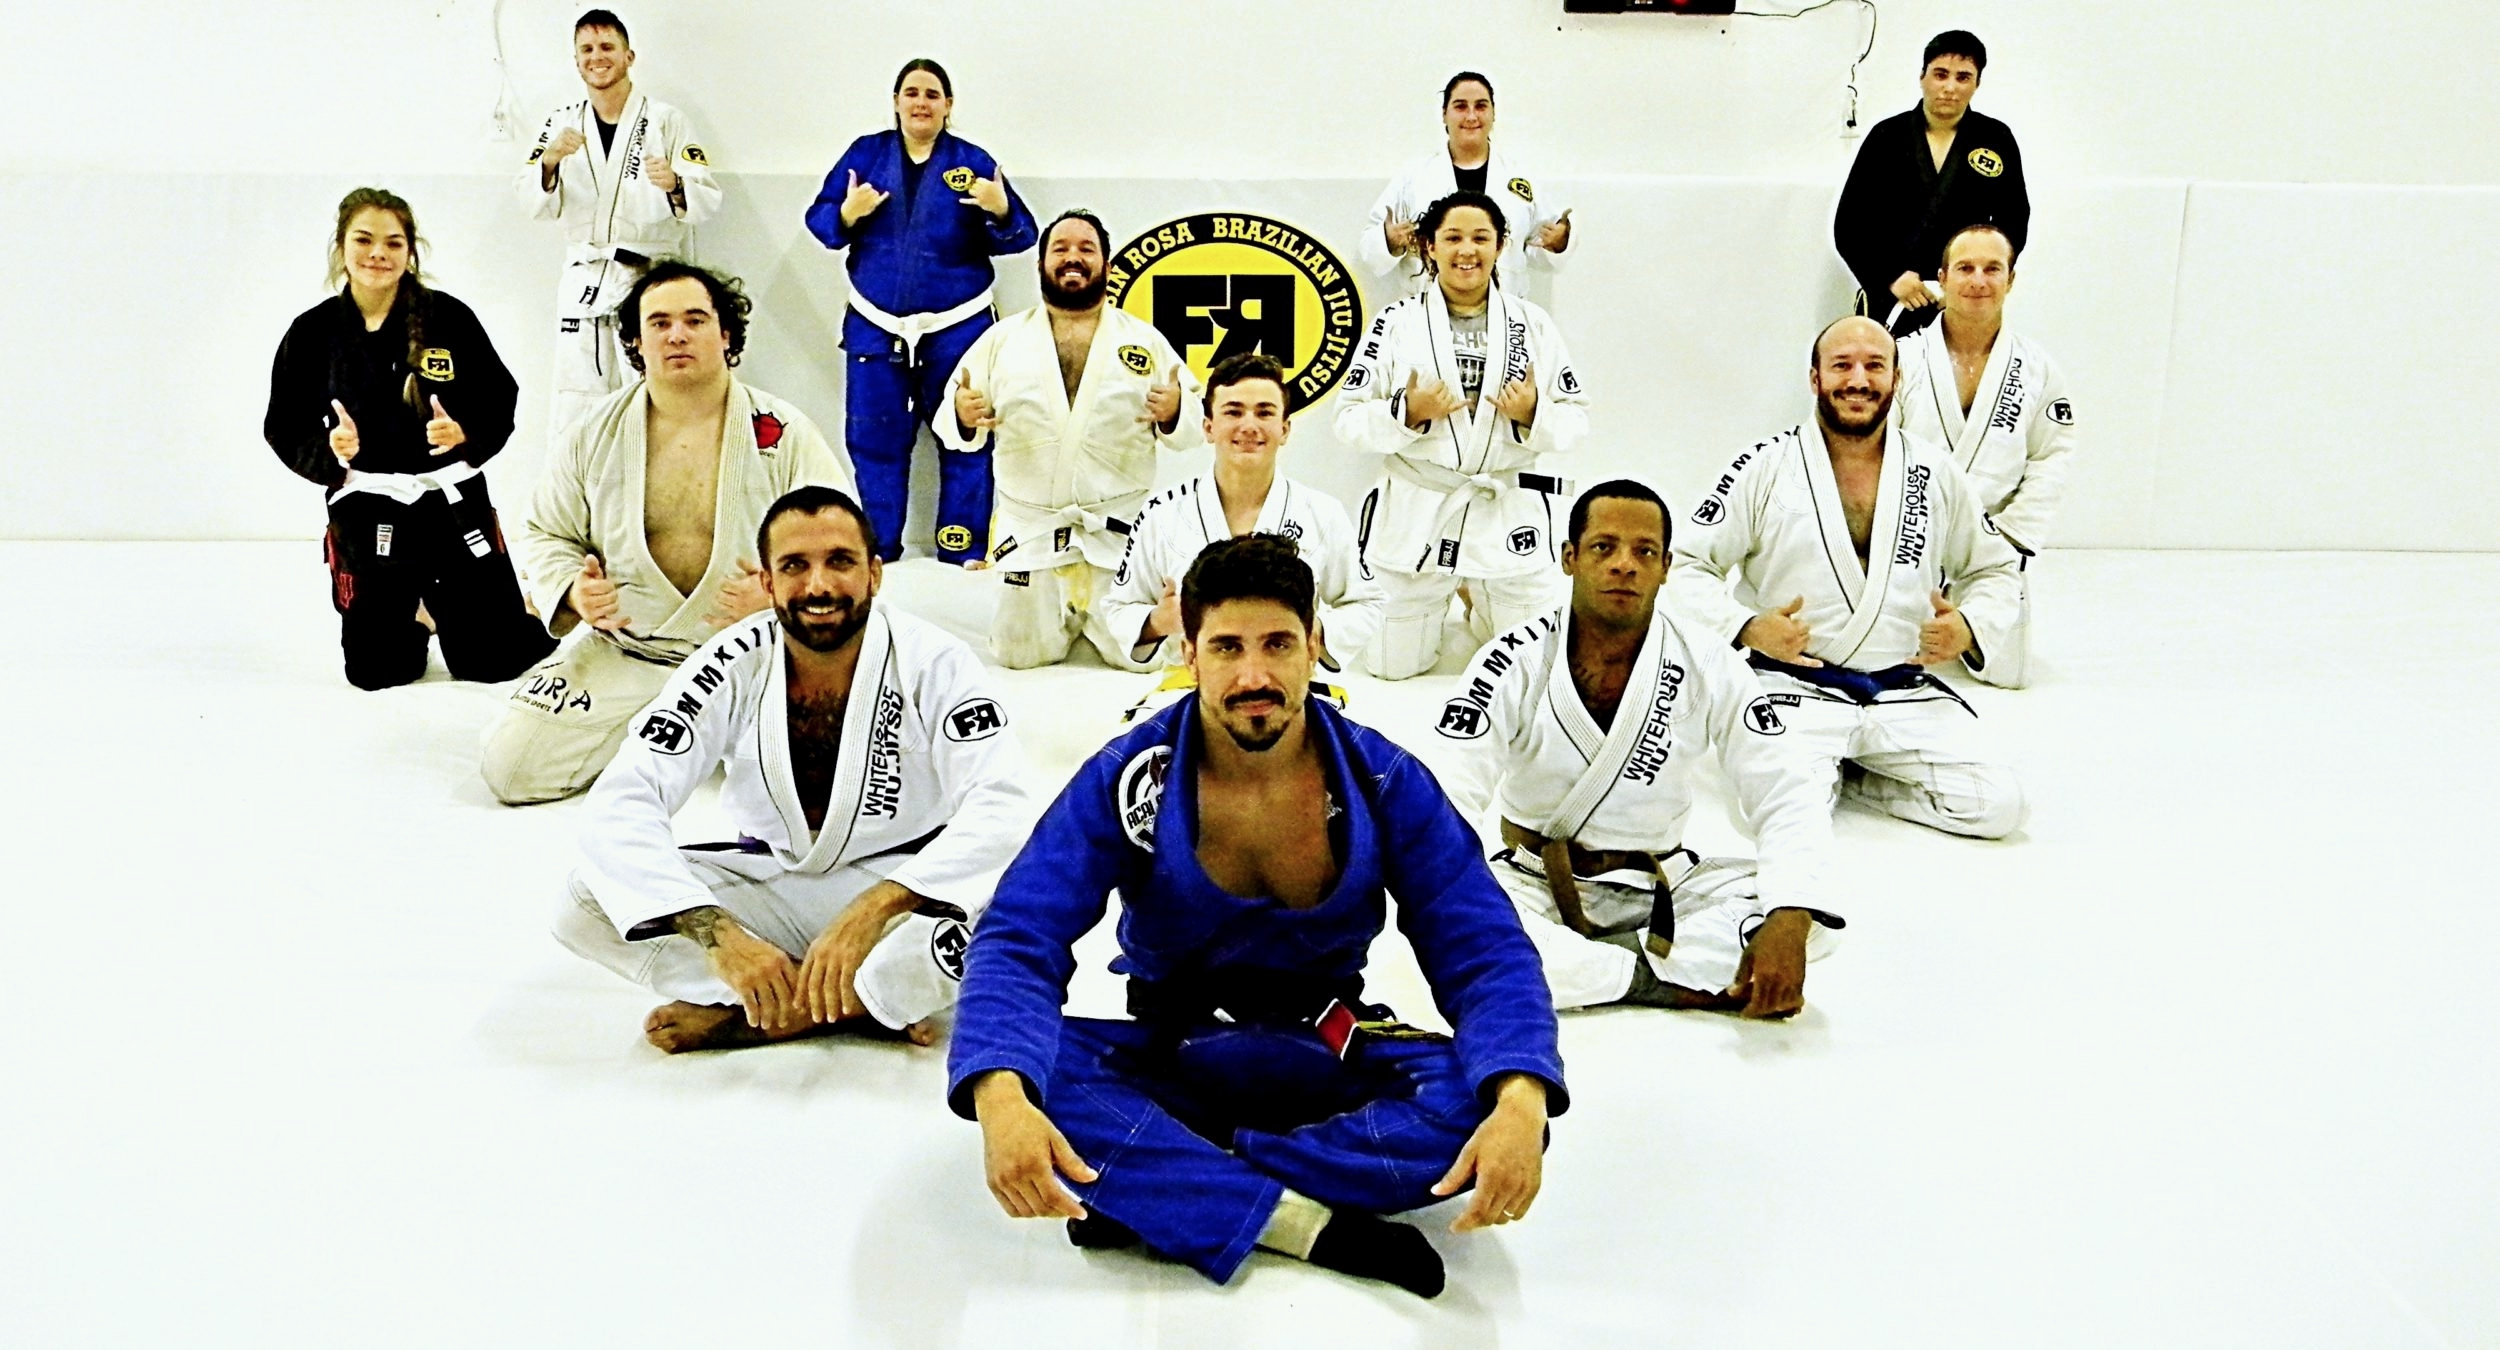 White House Jiu Jitsu Saint Cloud Florida 2